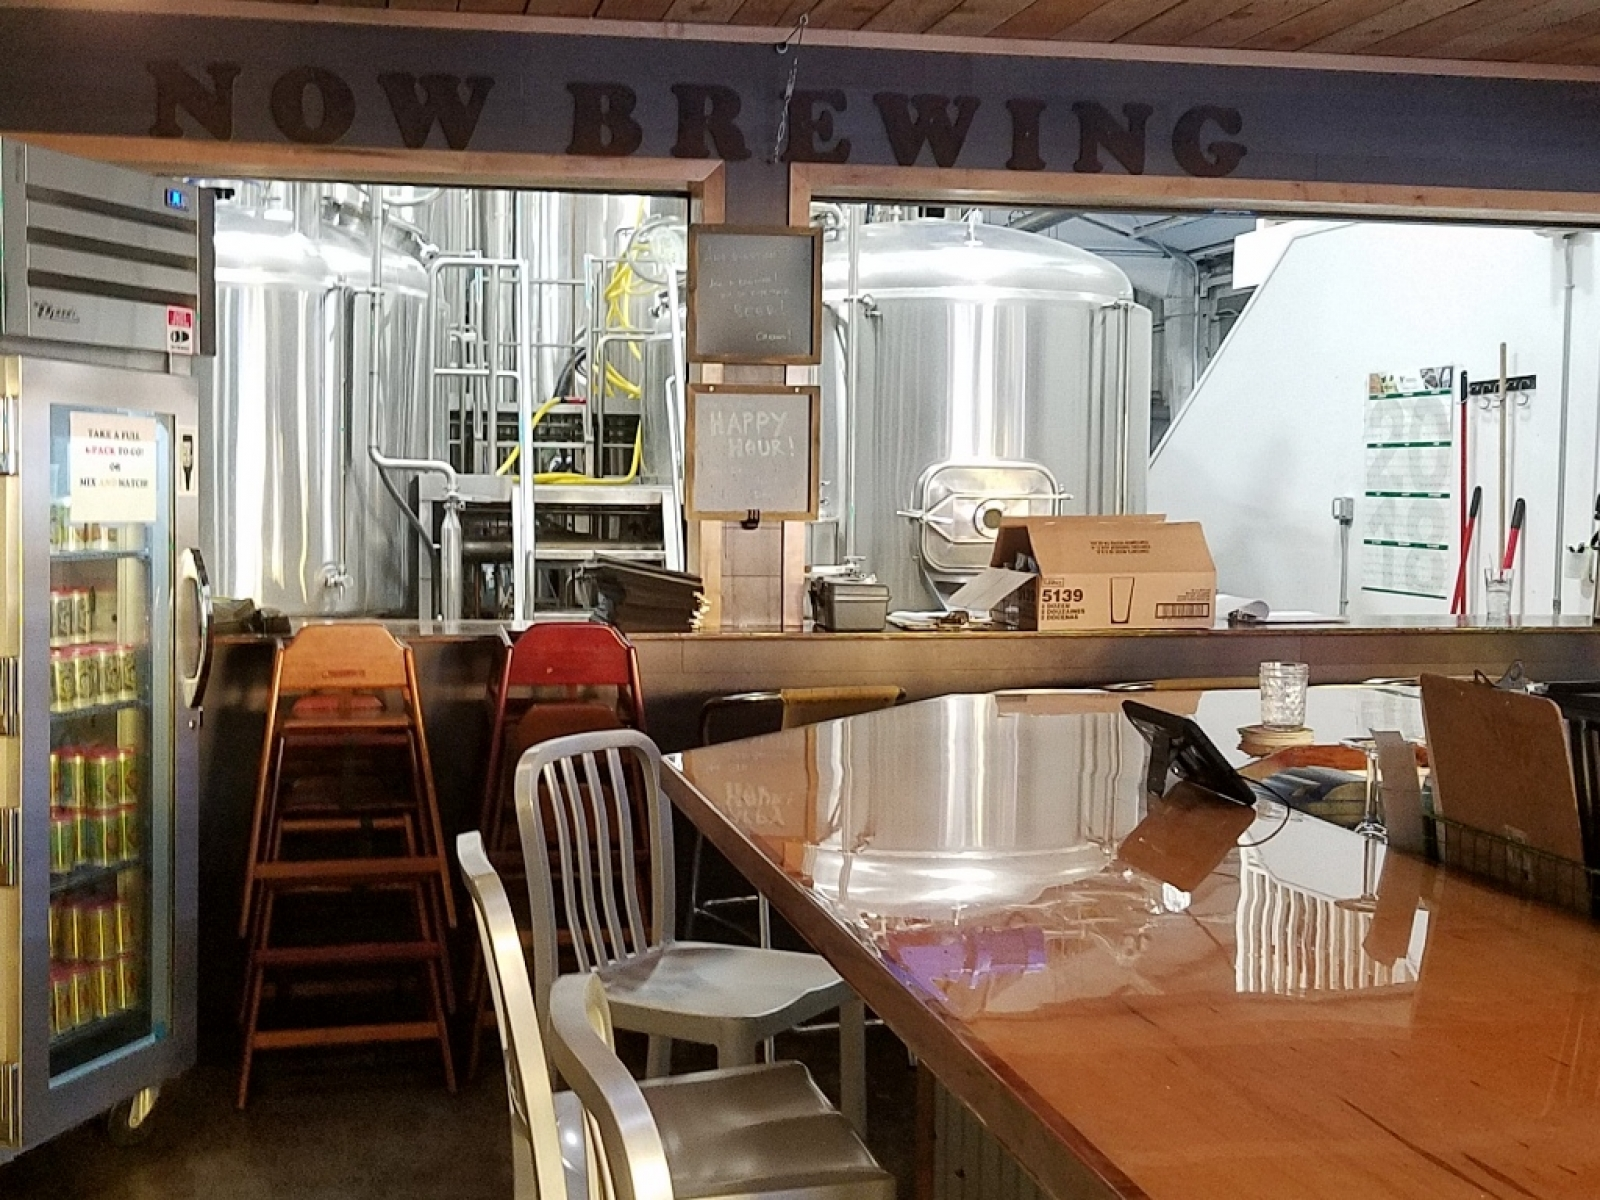 Take-Home Cooler and Brew Room viewing